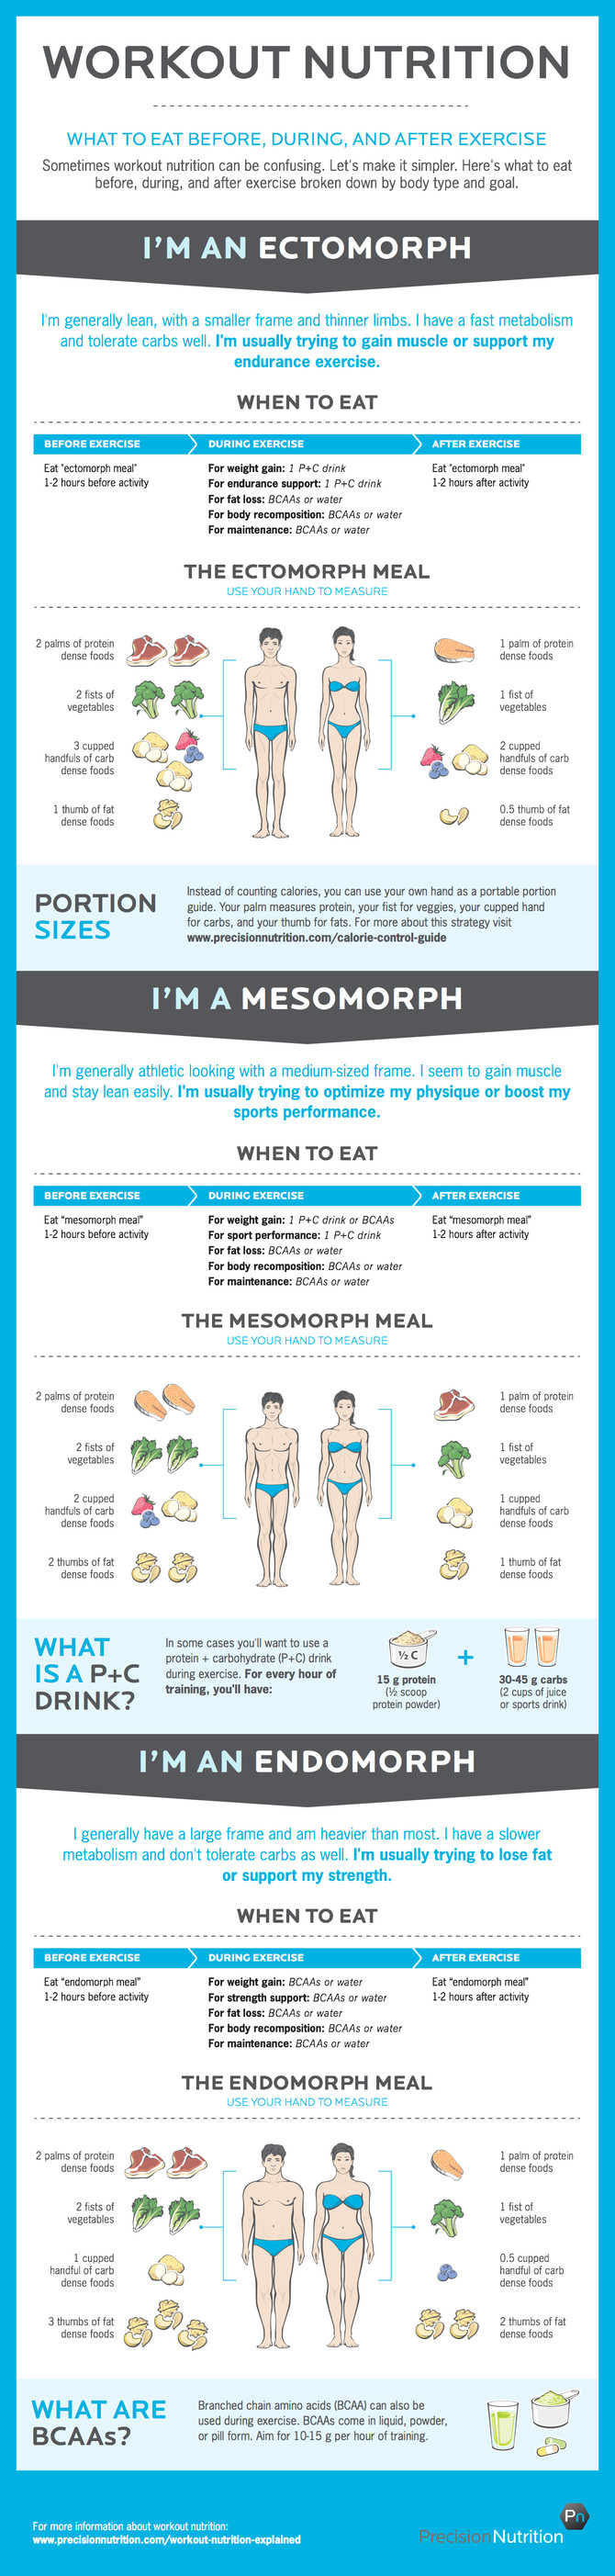 Workout Nutrition Illustrated. [Infographic] What to eat before, during, and after exercise.